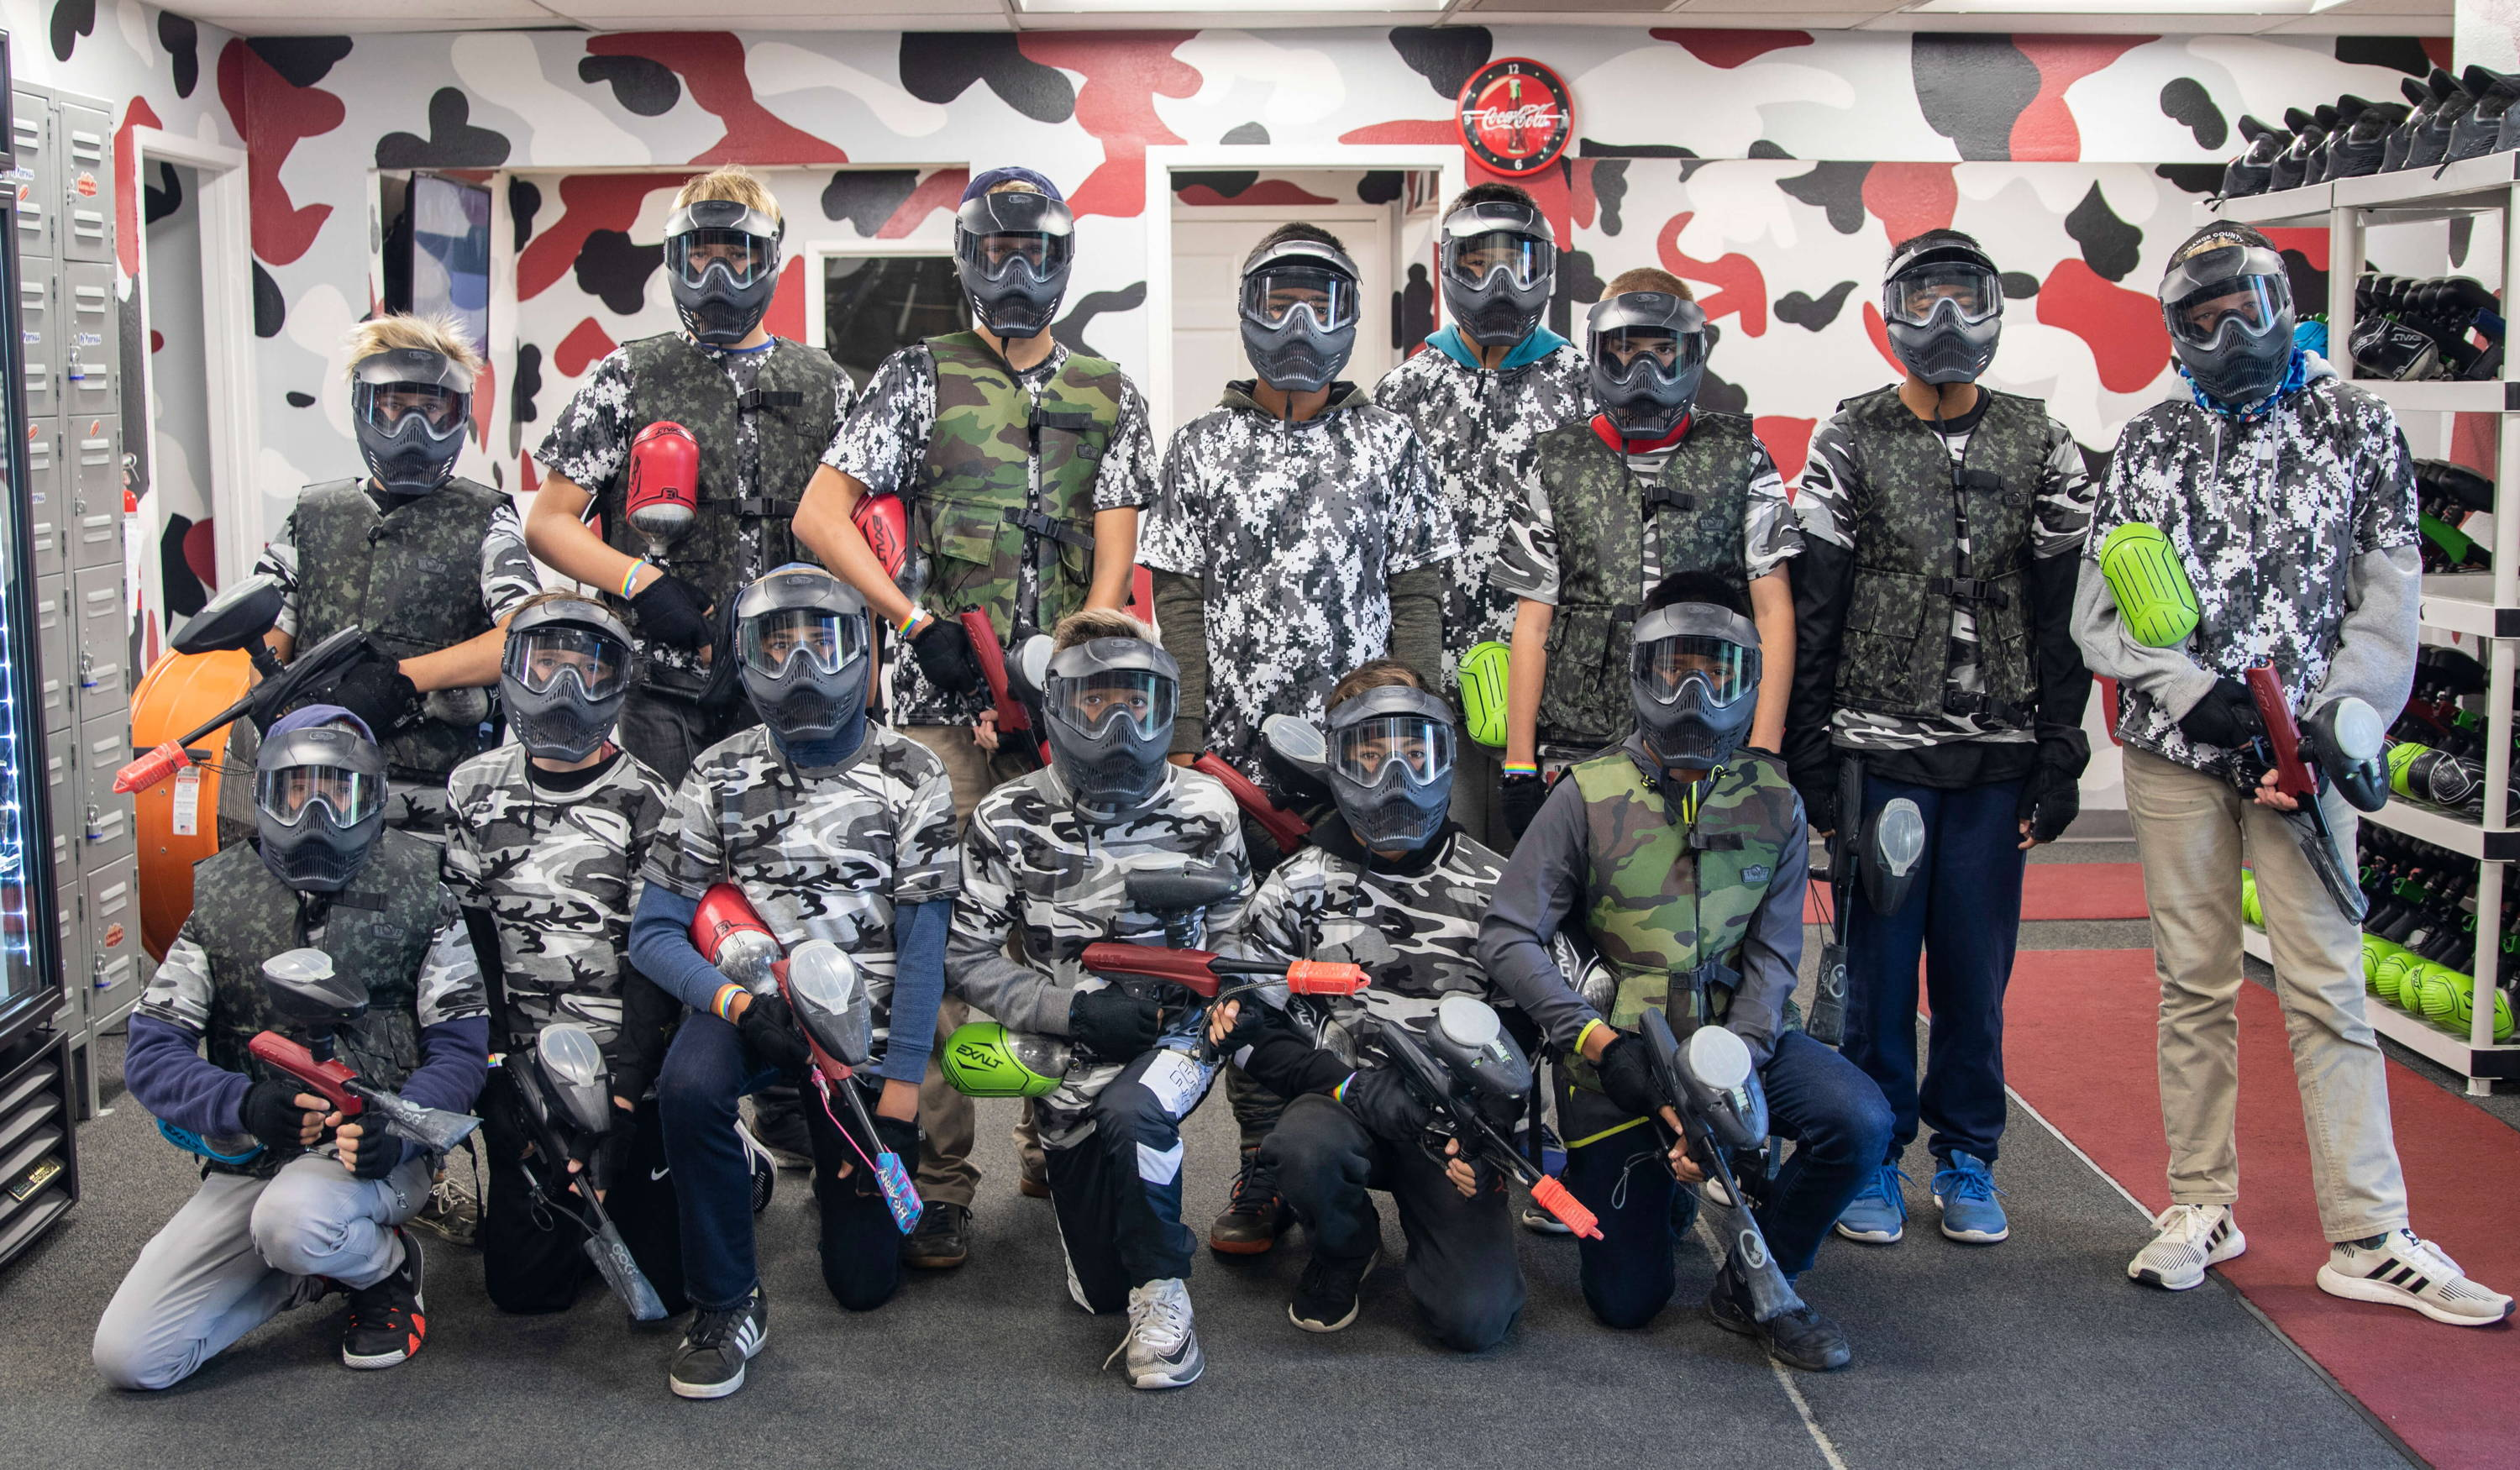 Birthday Party San Antonio Mezzanine Diego Paintball Park Group Photo